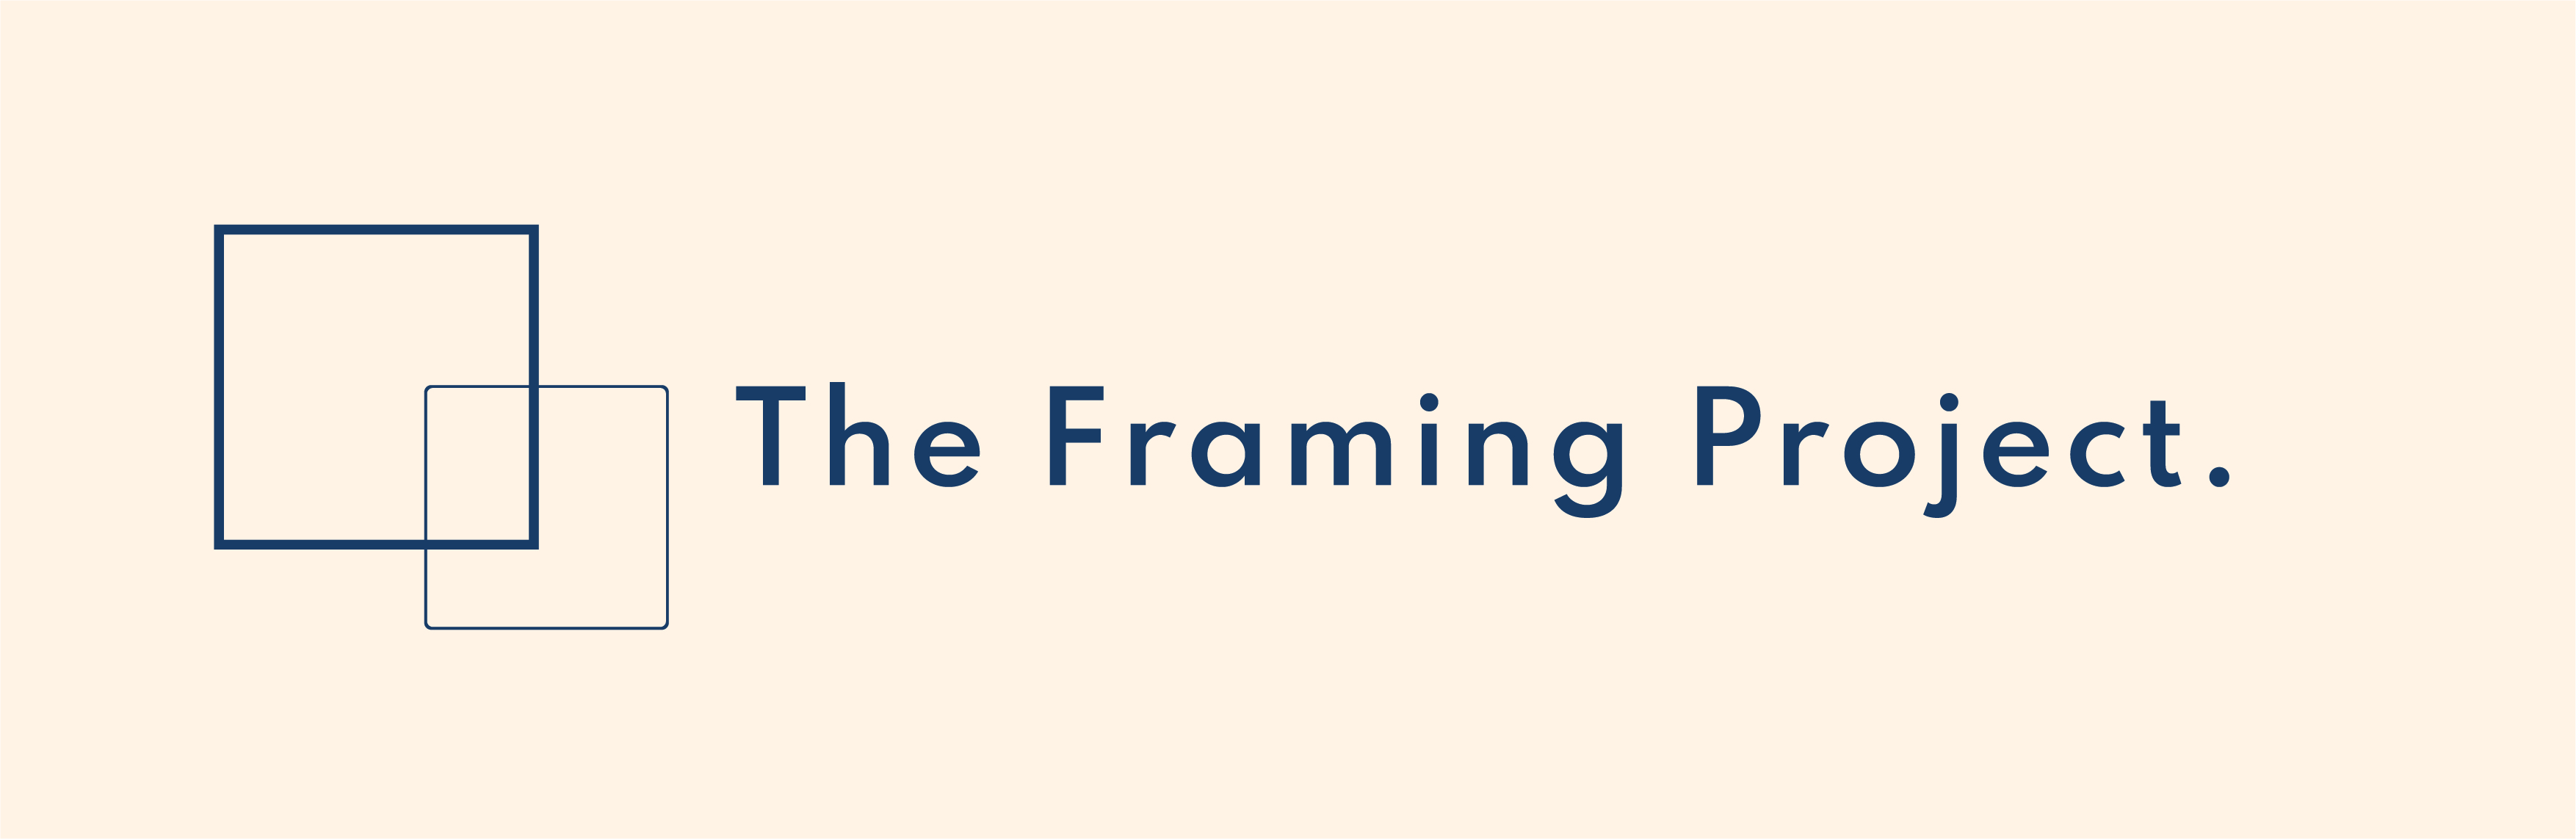 The Framing Project